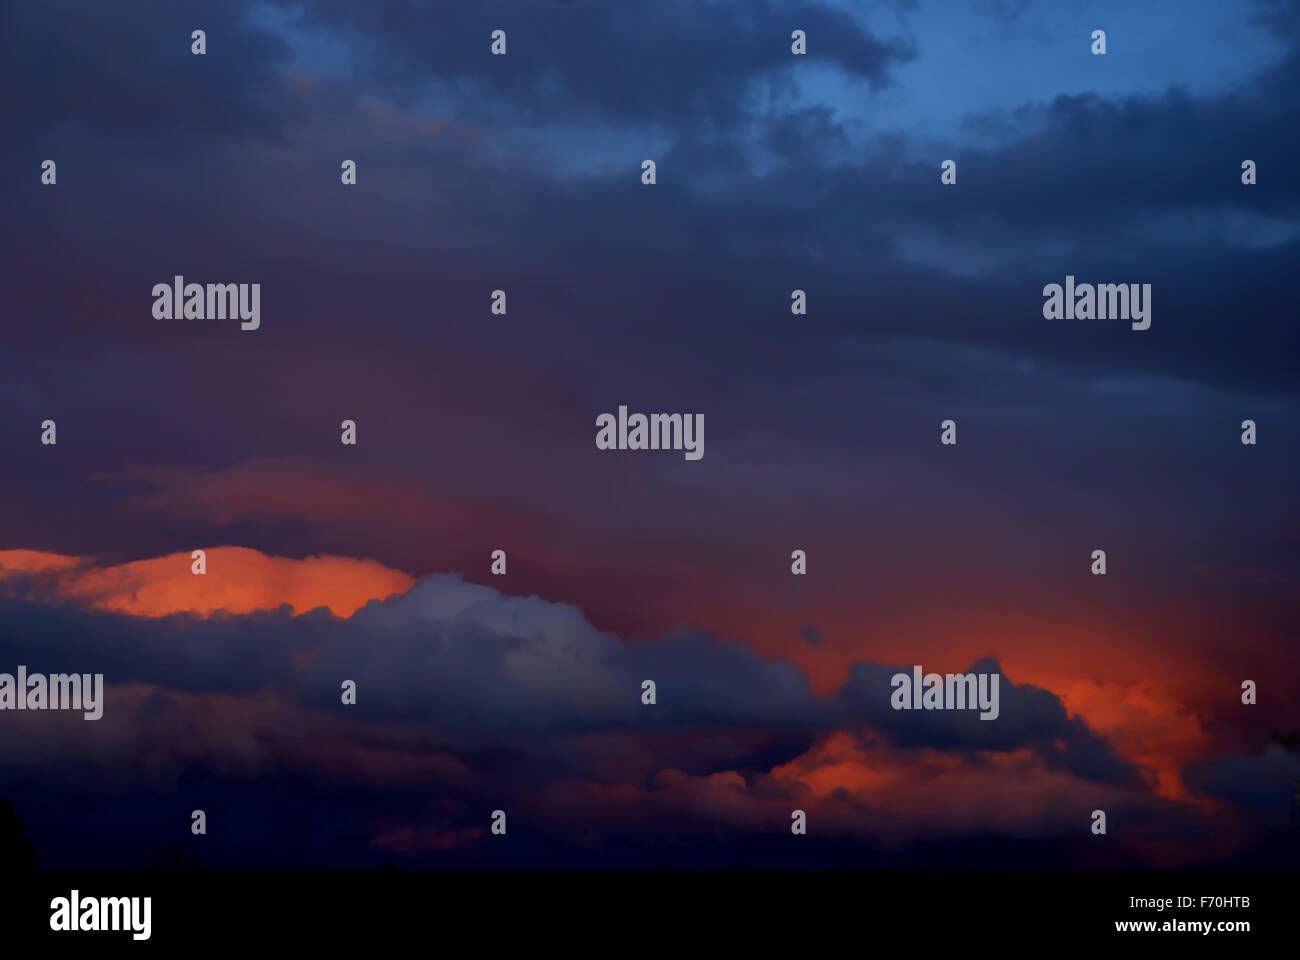 Storm clouds at sunset in purple, orange, pink, blue - Stock Image